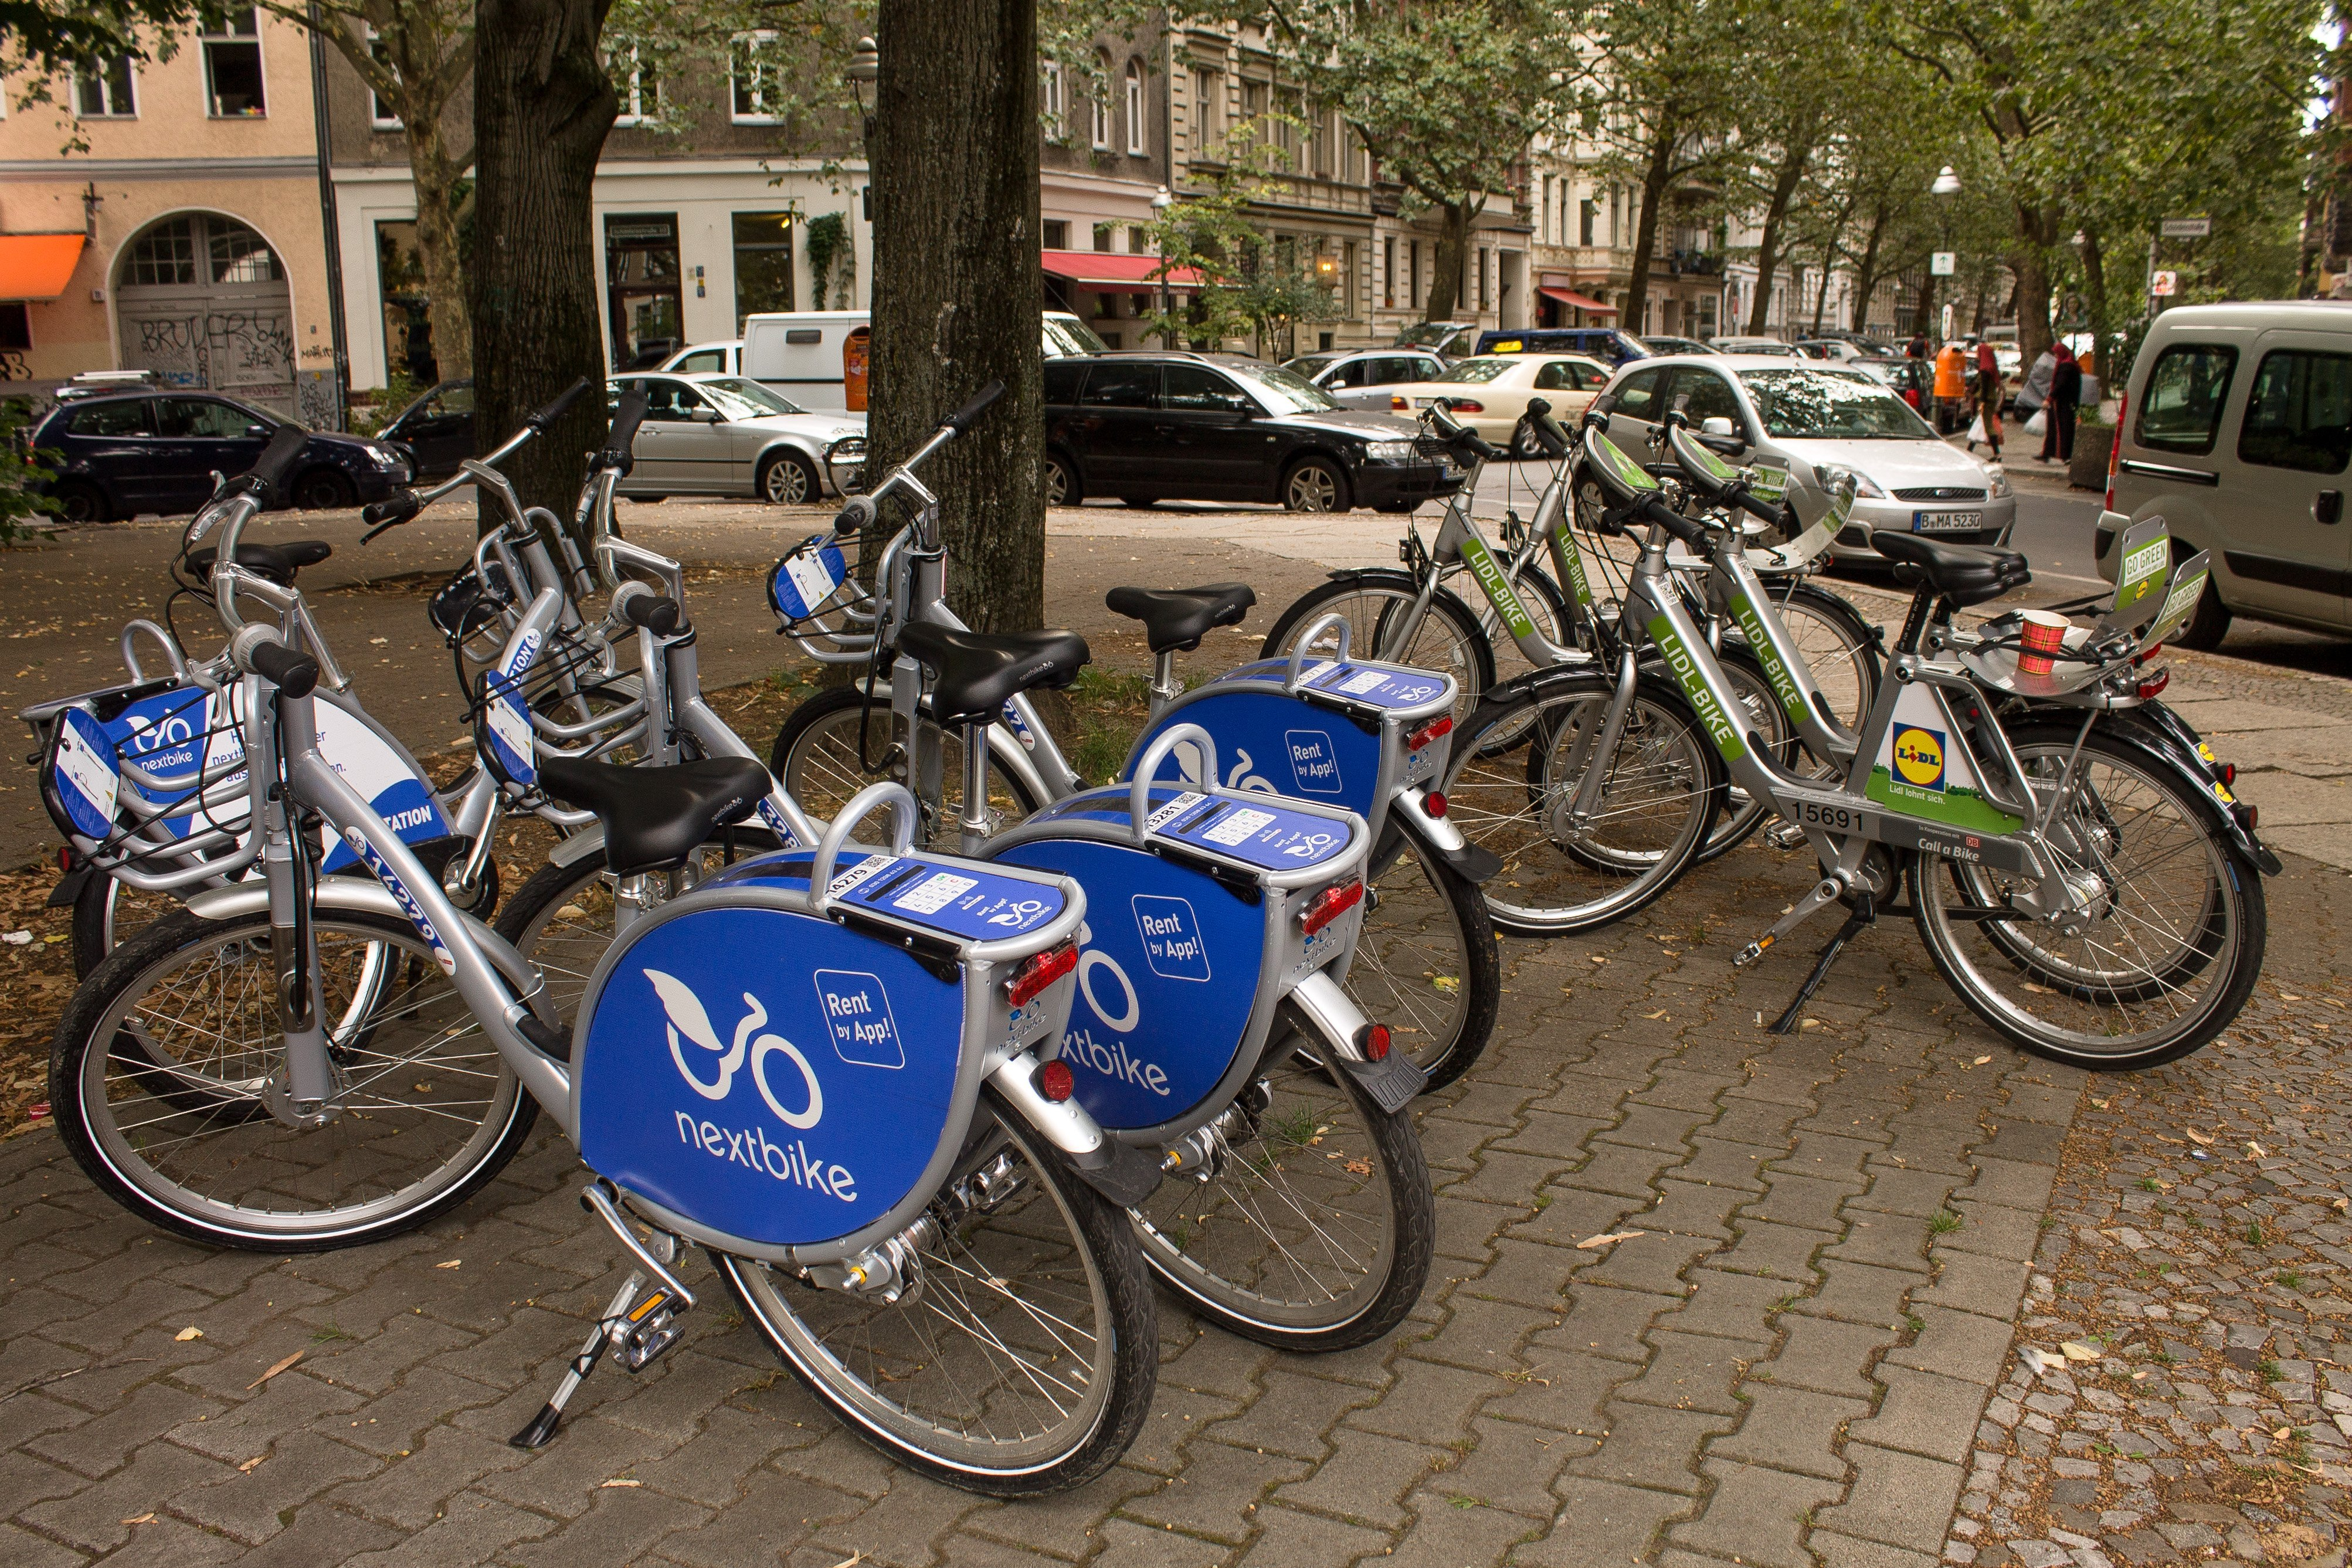 Bike Share Bikes in Berlin, Germany